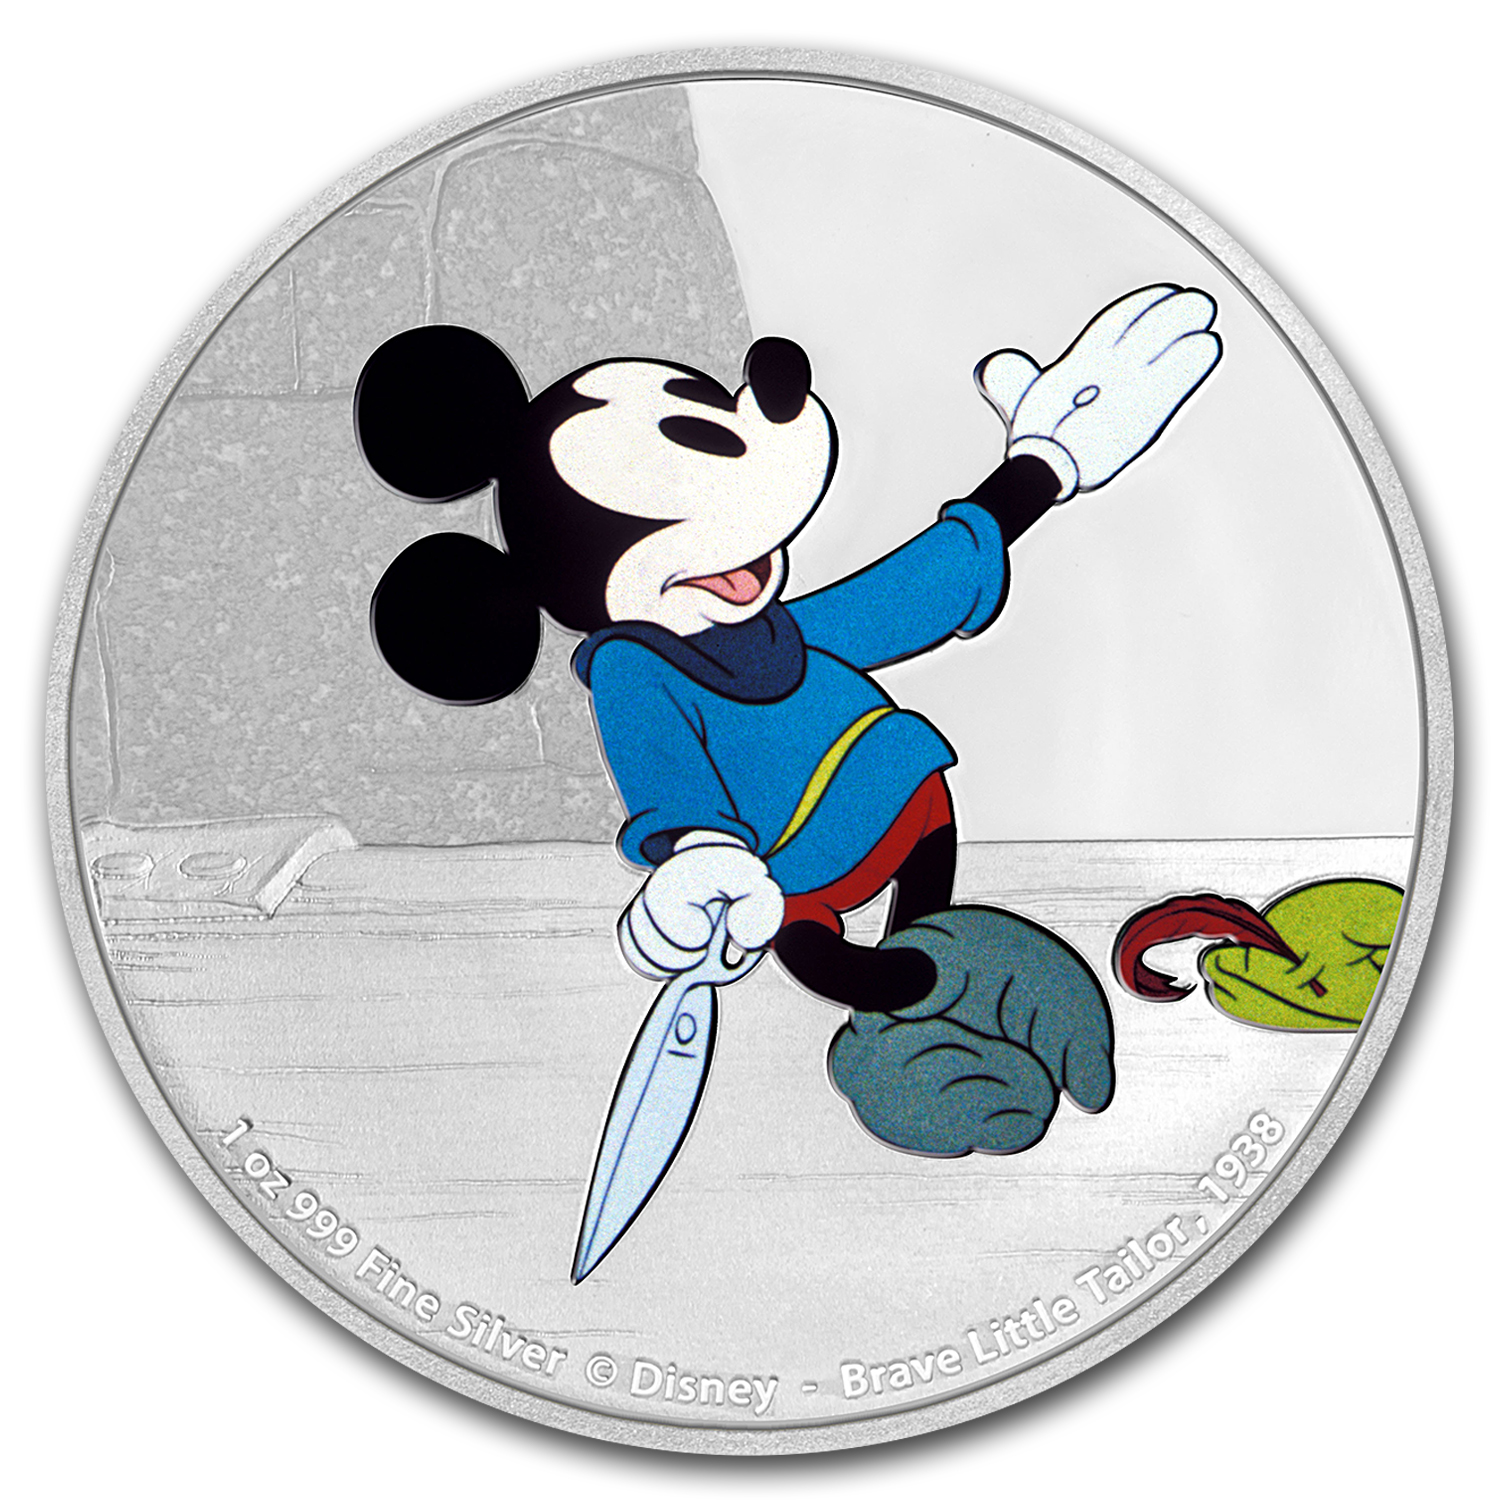 2016 1 oz Silver $2 Mickey Through the Ages: Brave Little Tailor